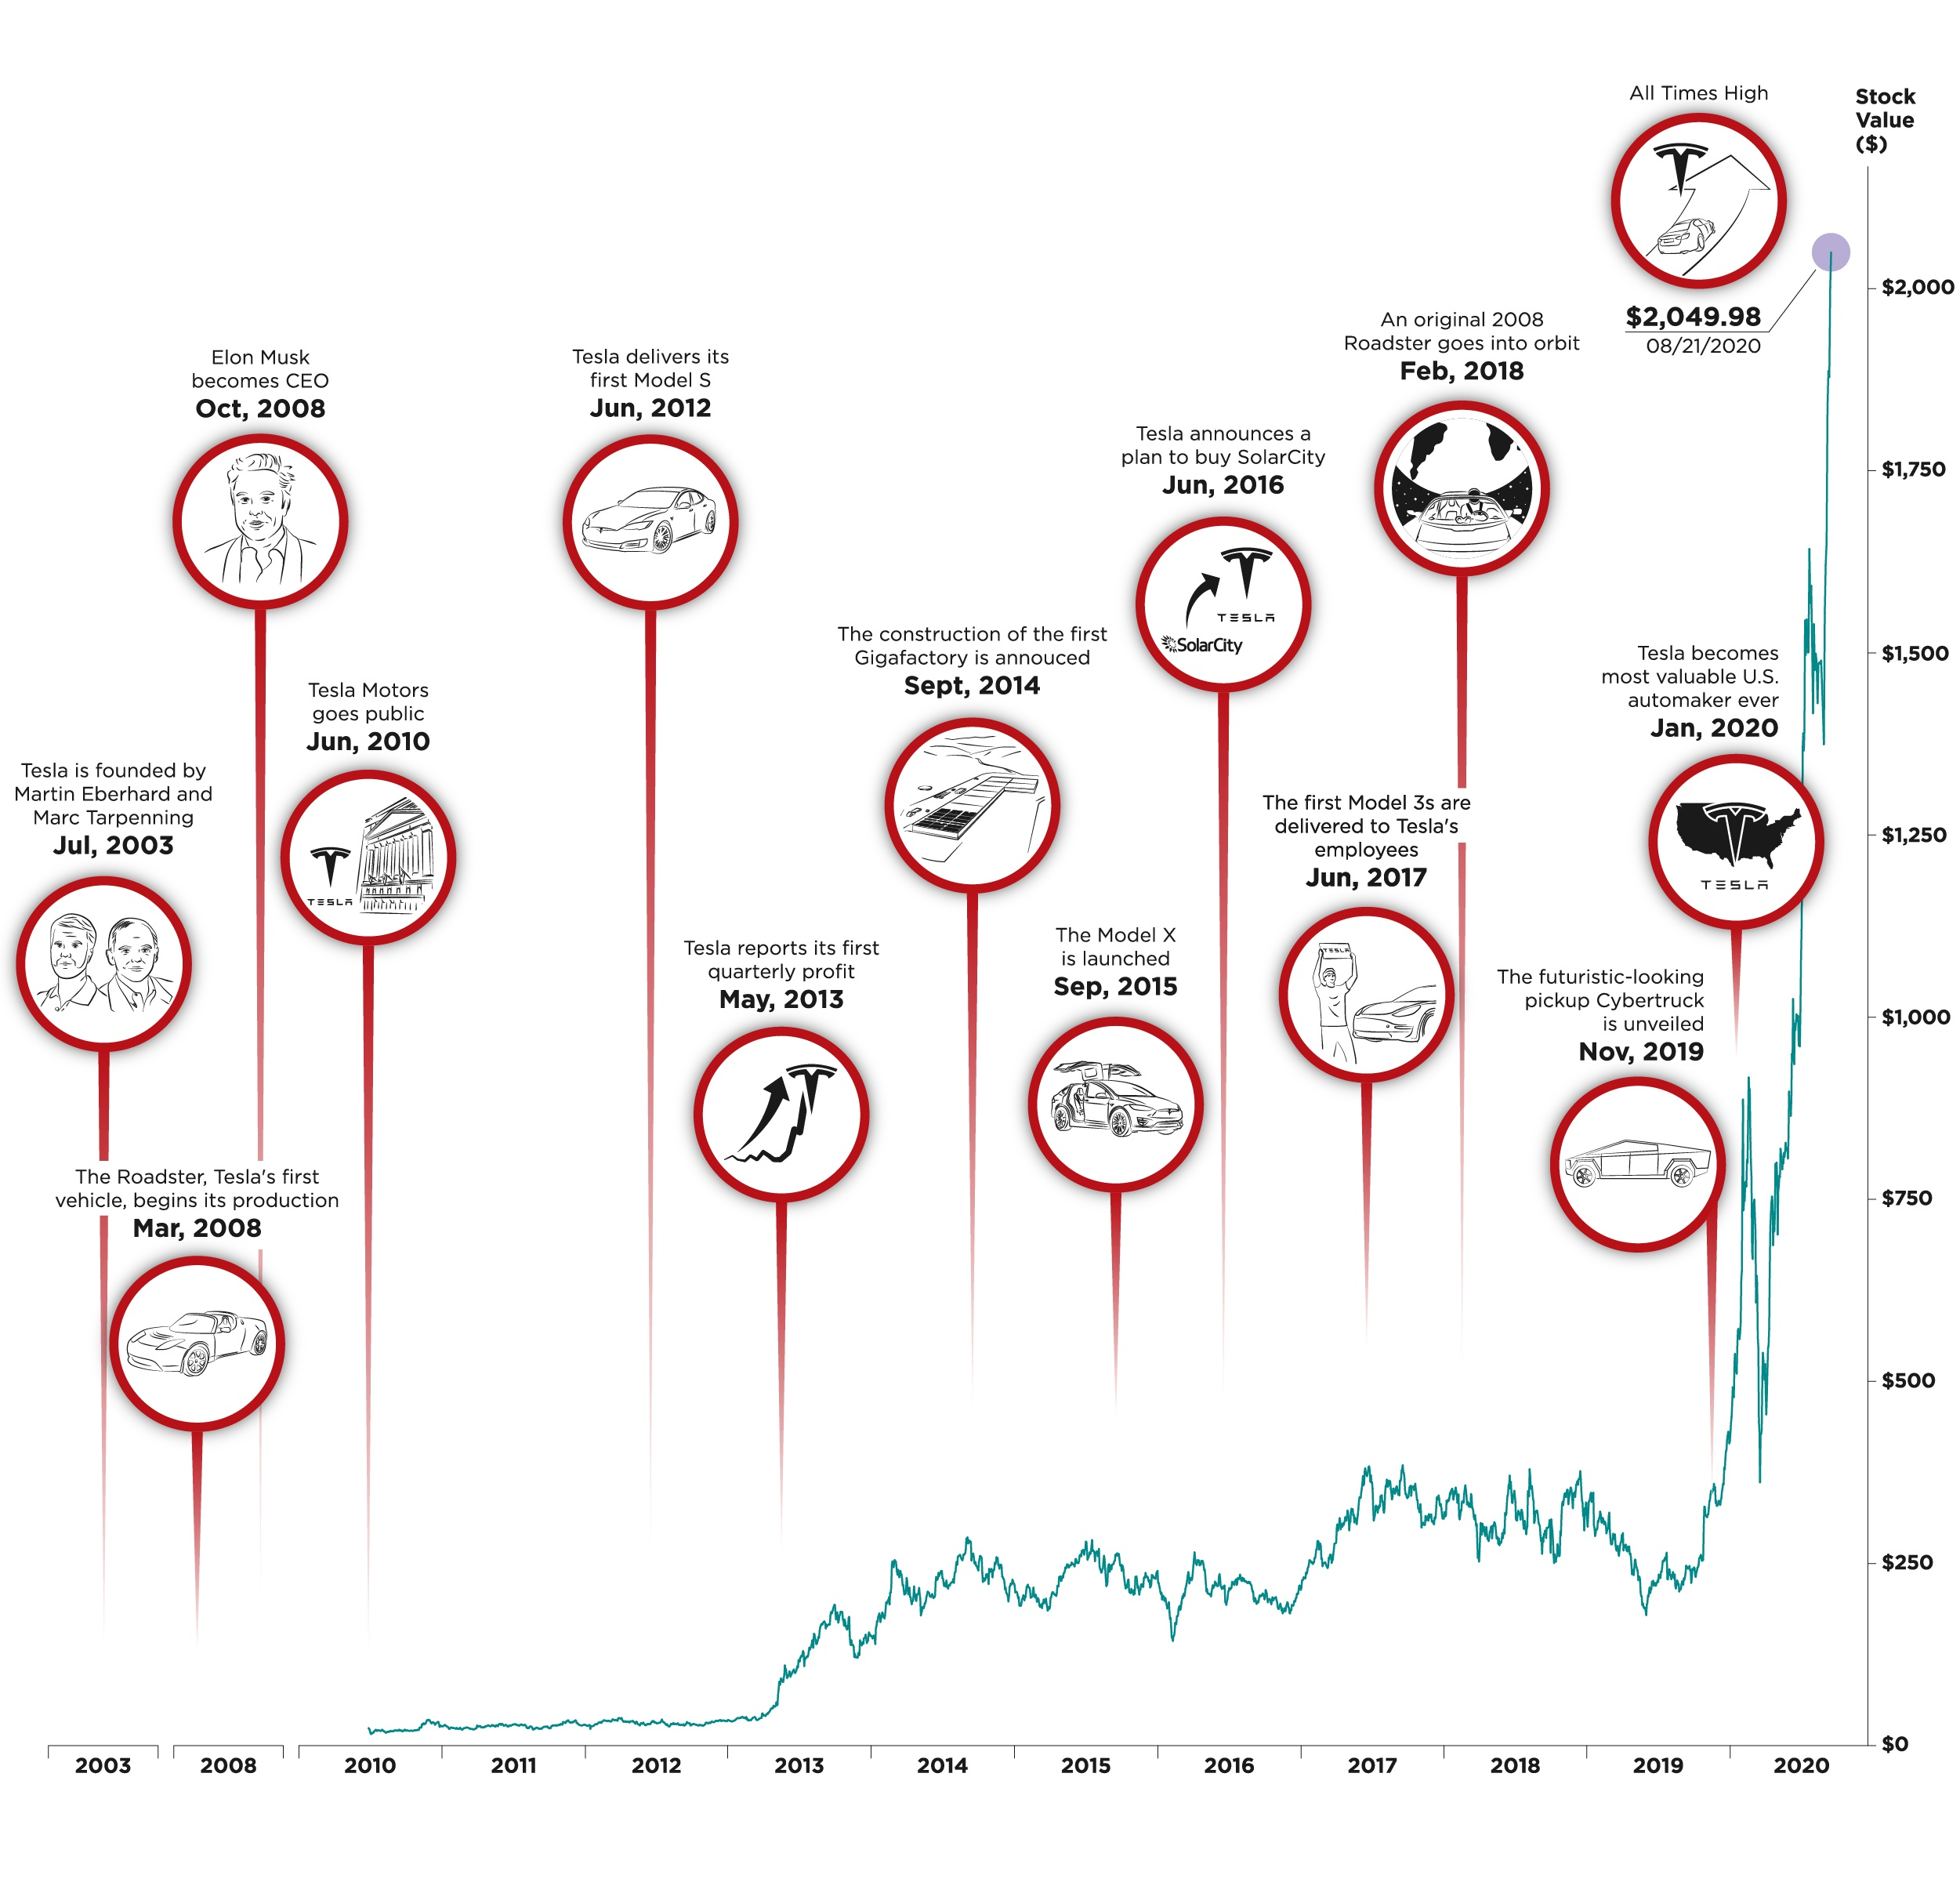 Visualizing The Entire History of Tesla Stock Price